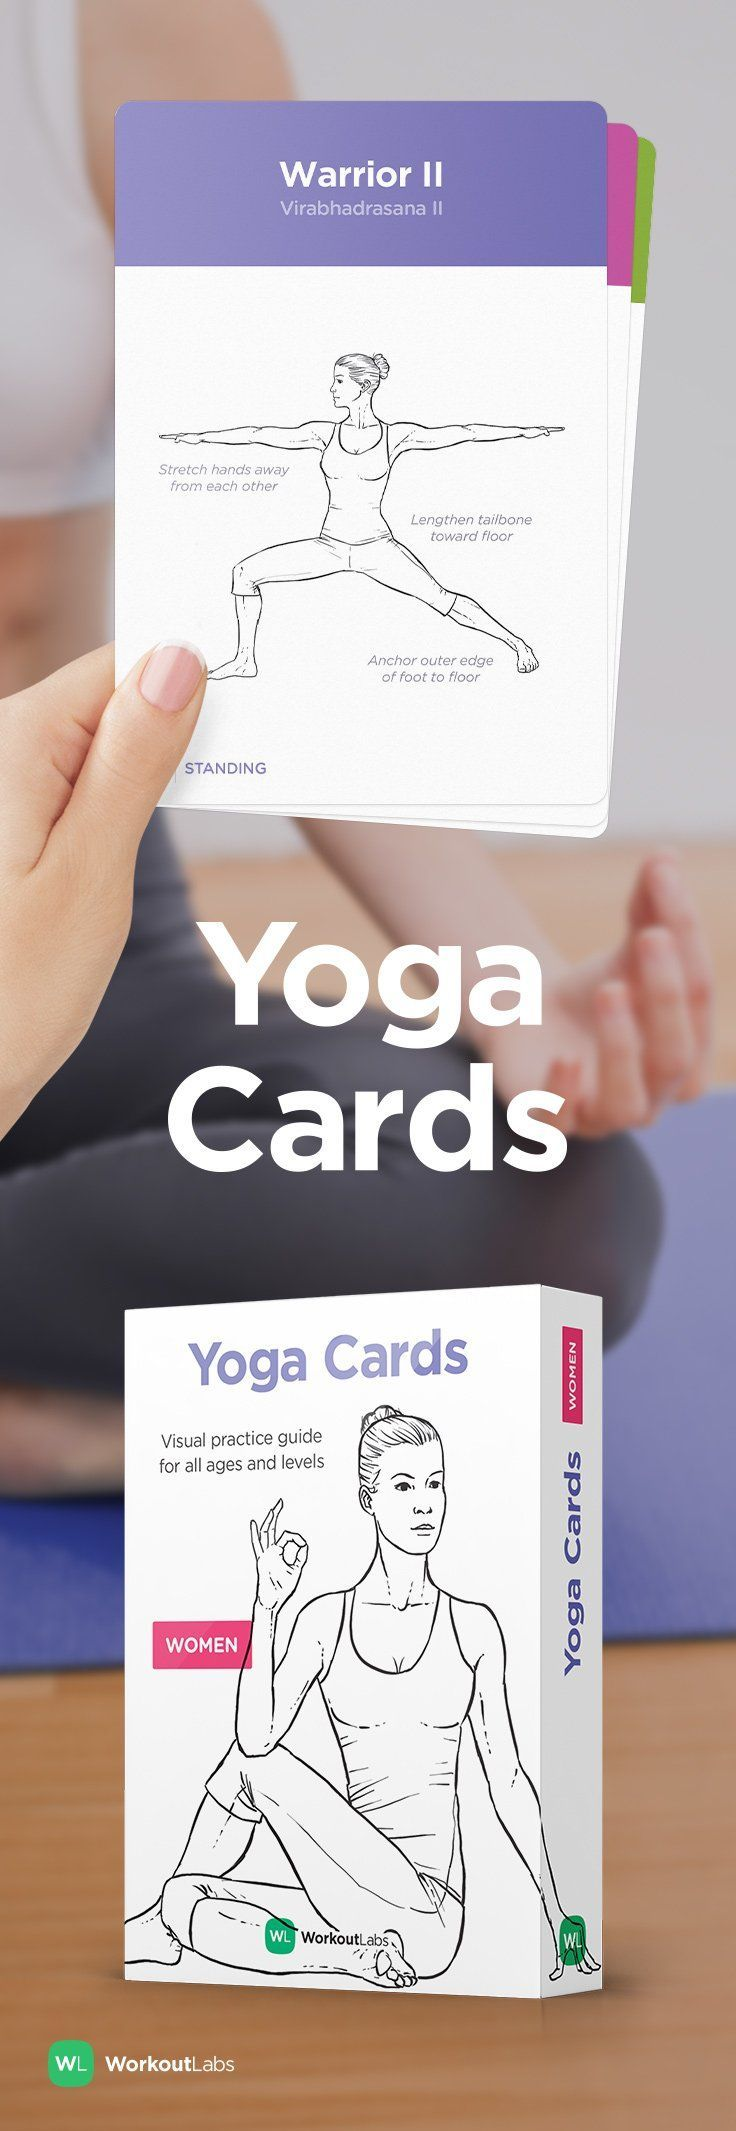 Learn and practice yoga at home with YOGA CARDS –a simple visual guide with essential poses, breathing exercises and meditation. Visit http://WLShop.co